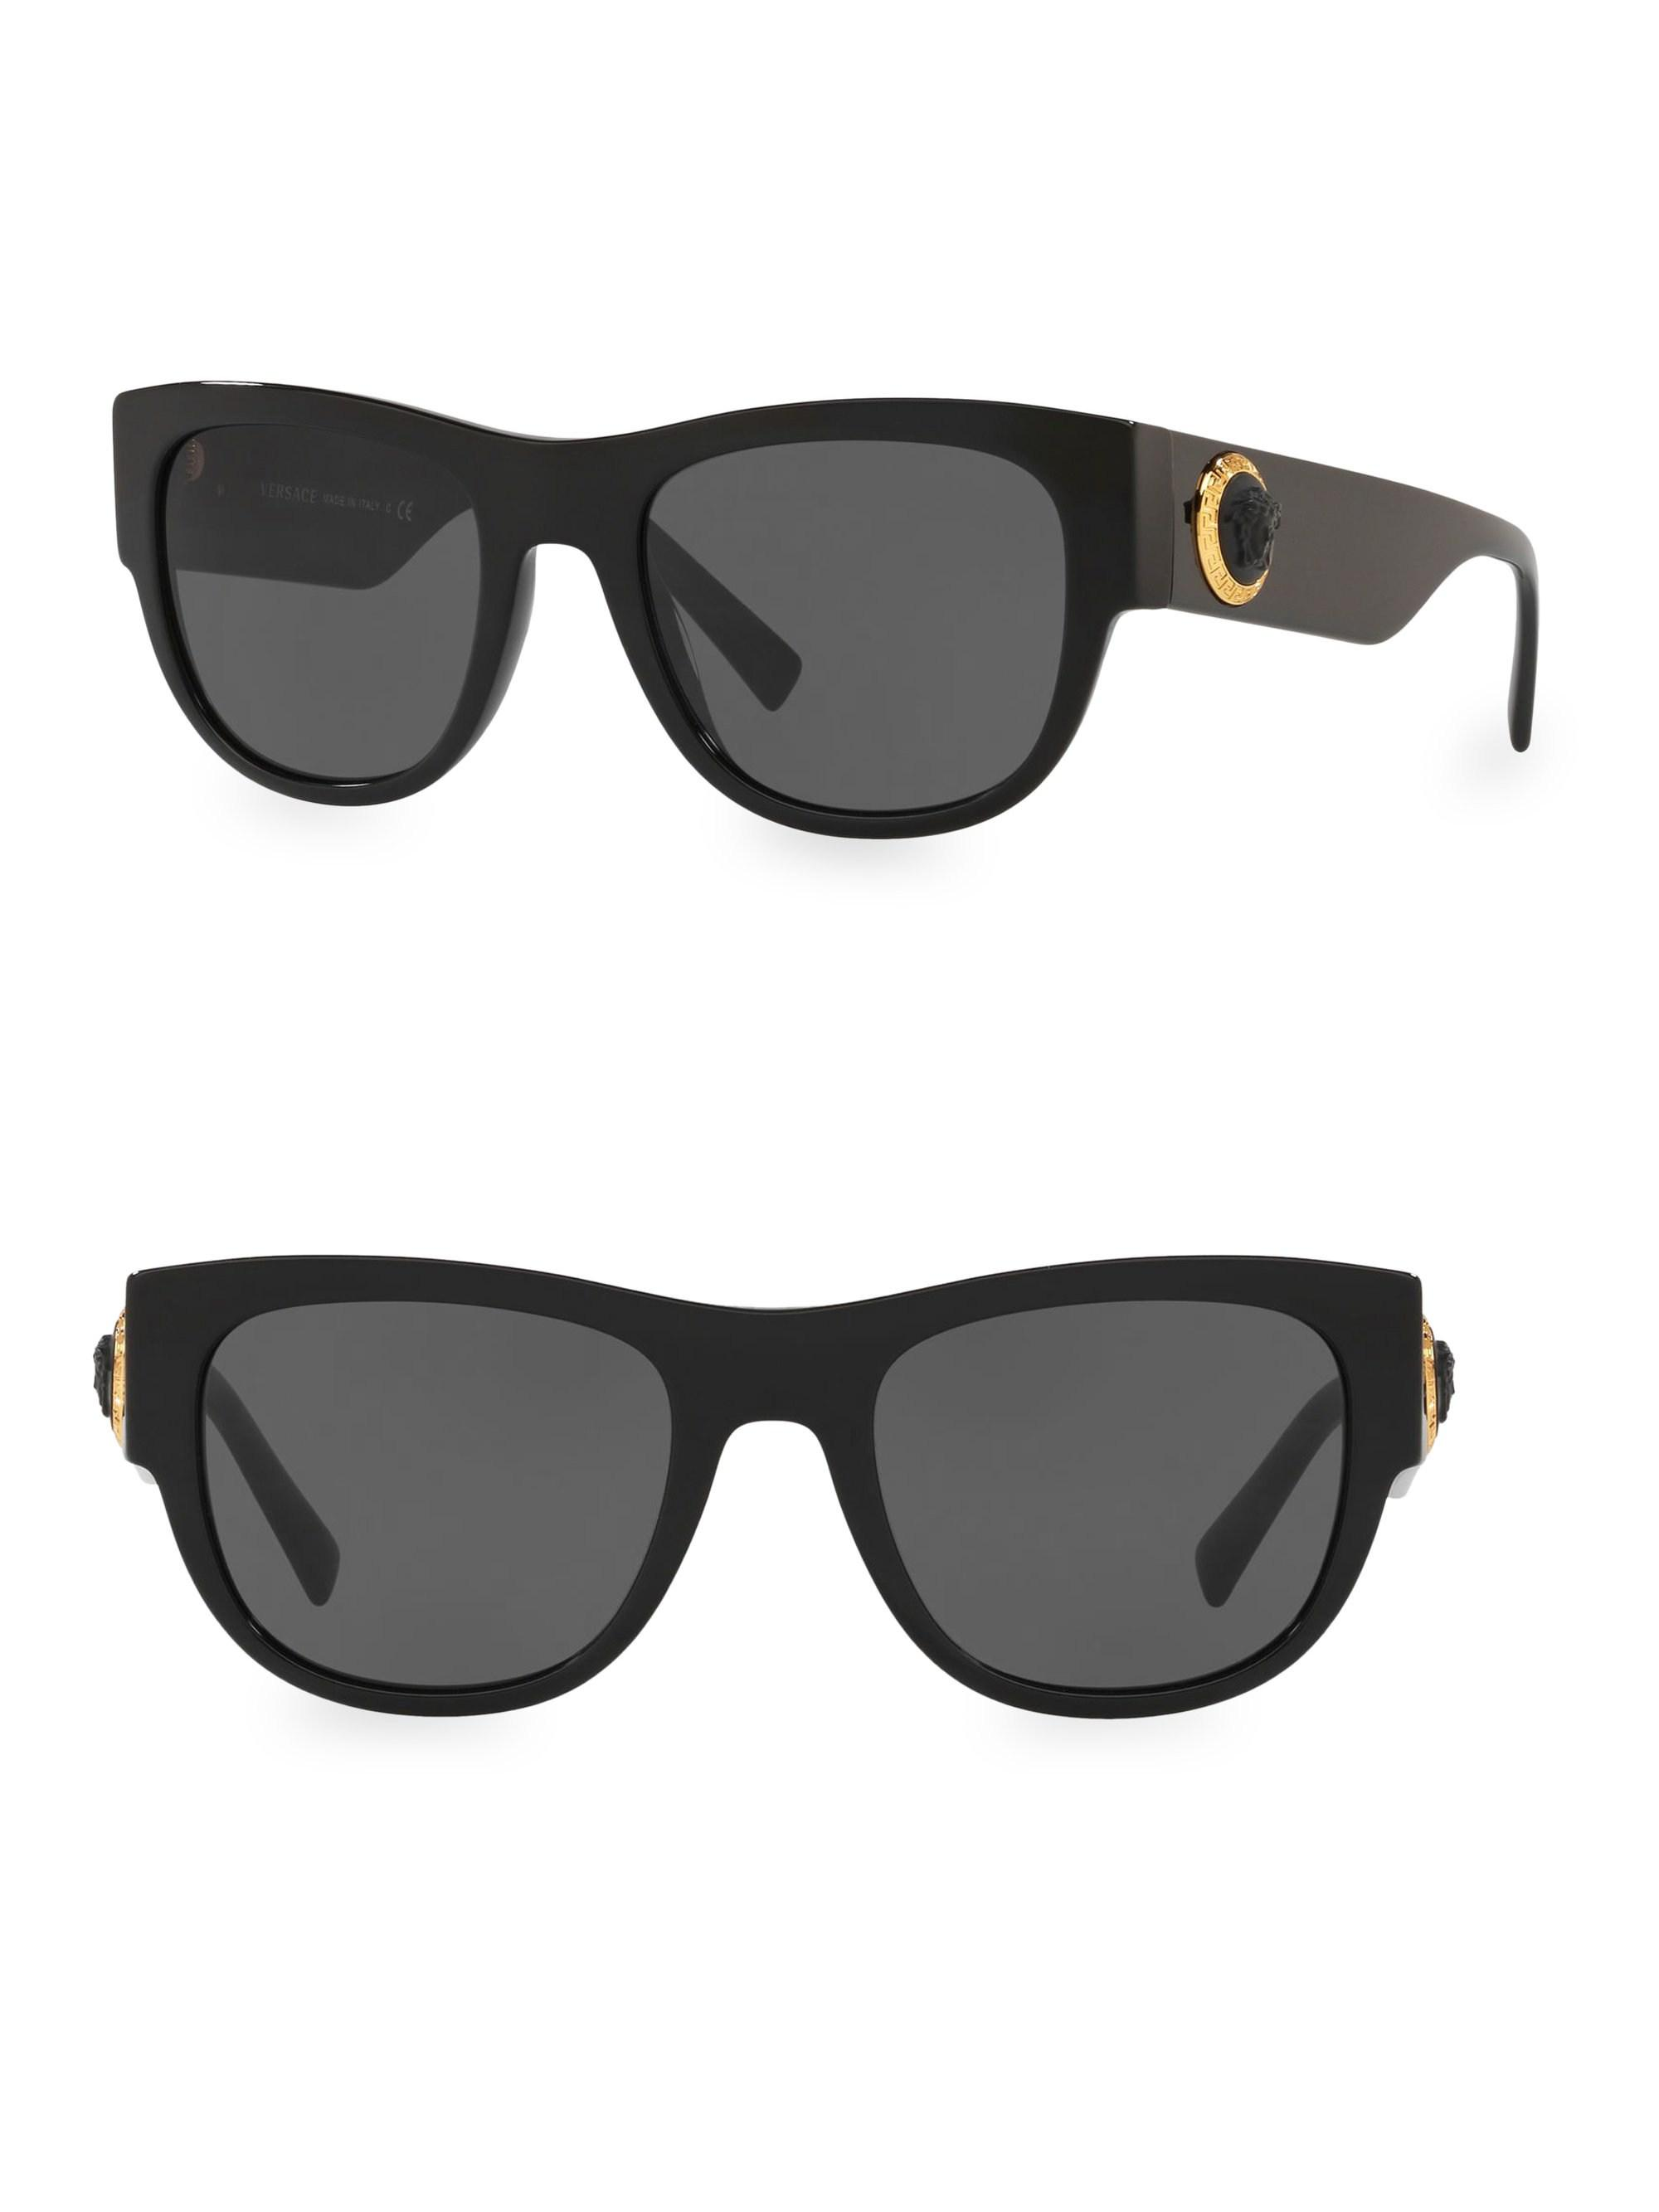 9782e8daad Versace Rock Icons 55mm Square Sunglasses in Black - Lyst